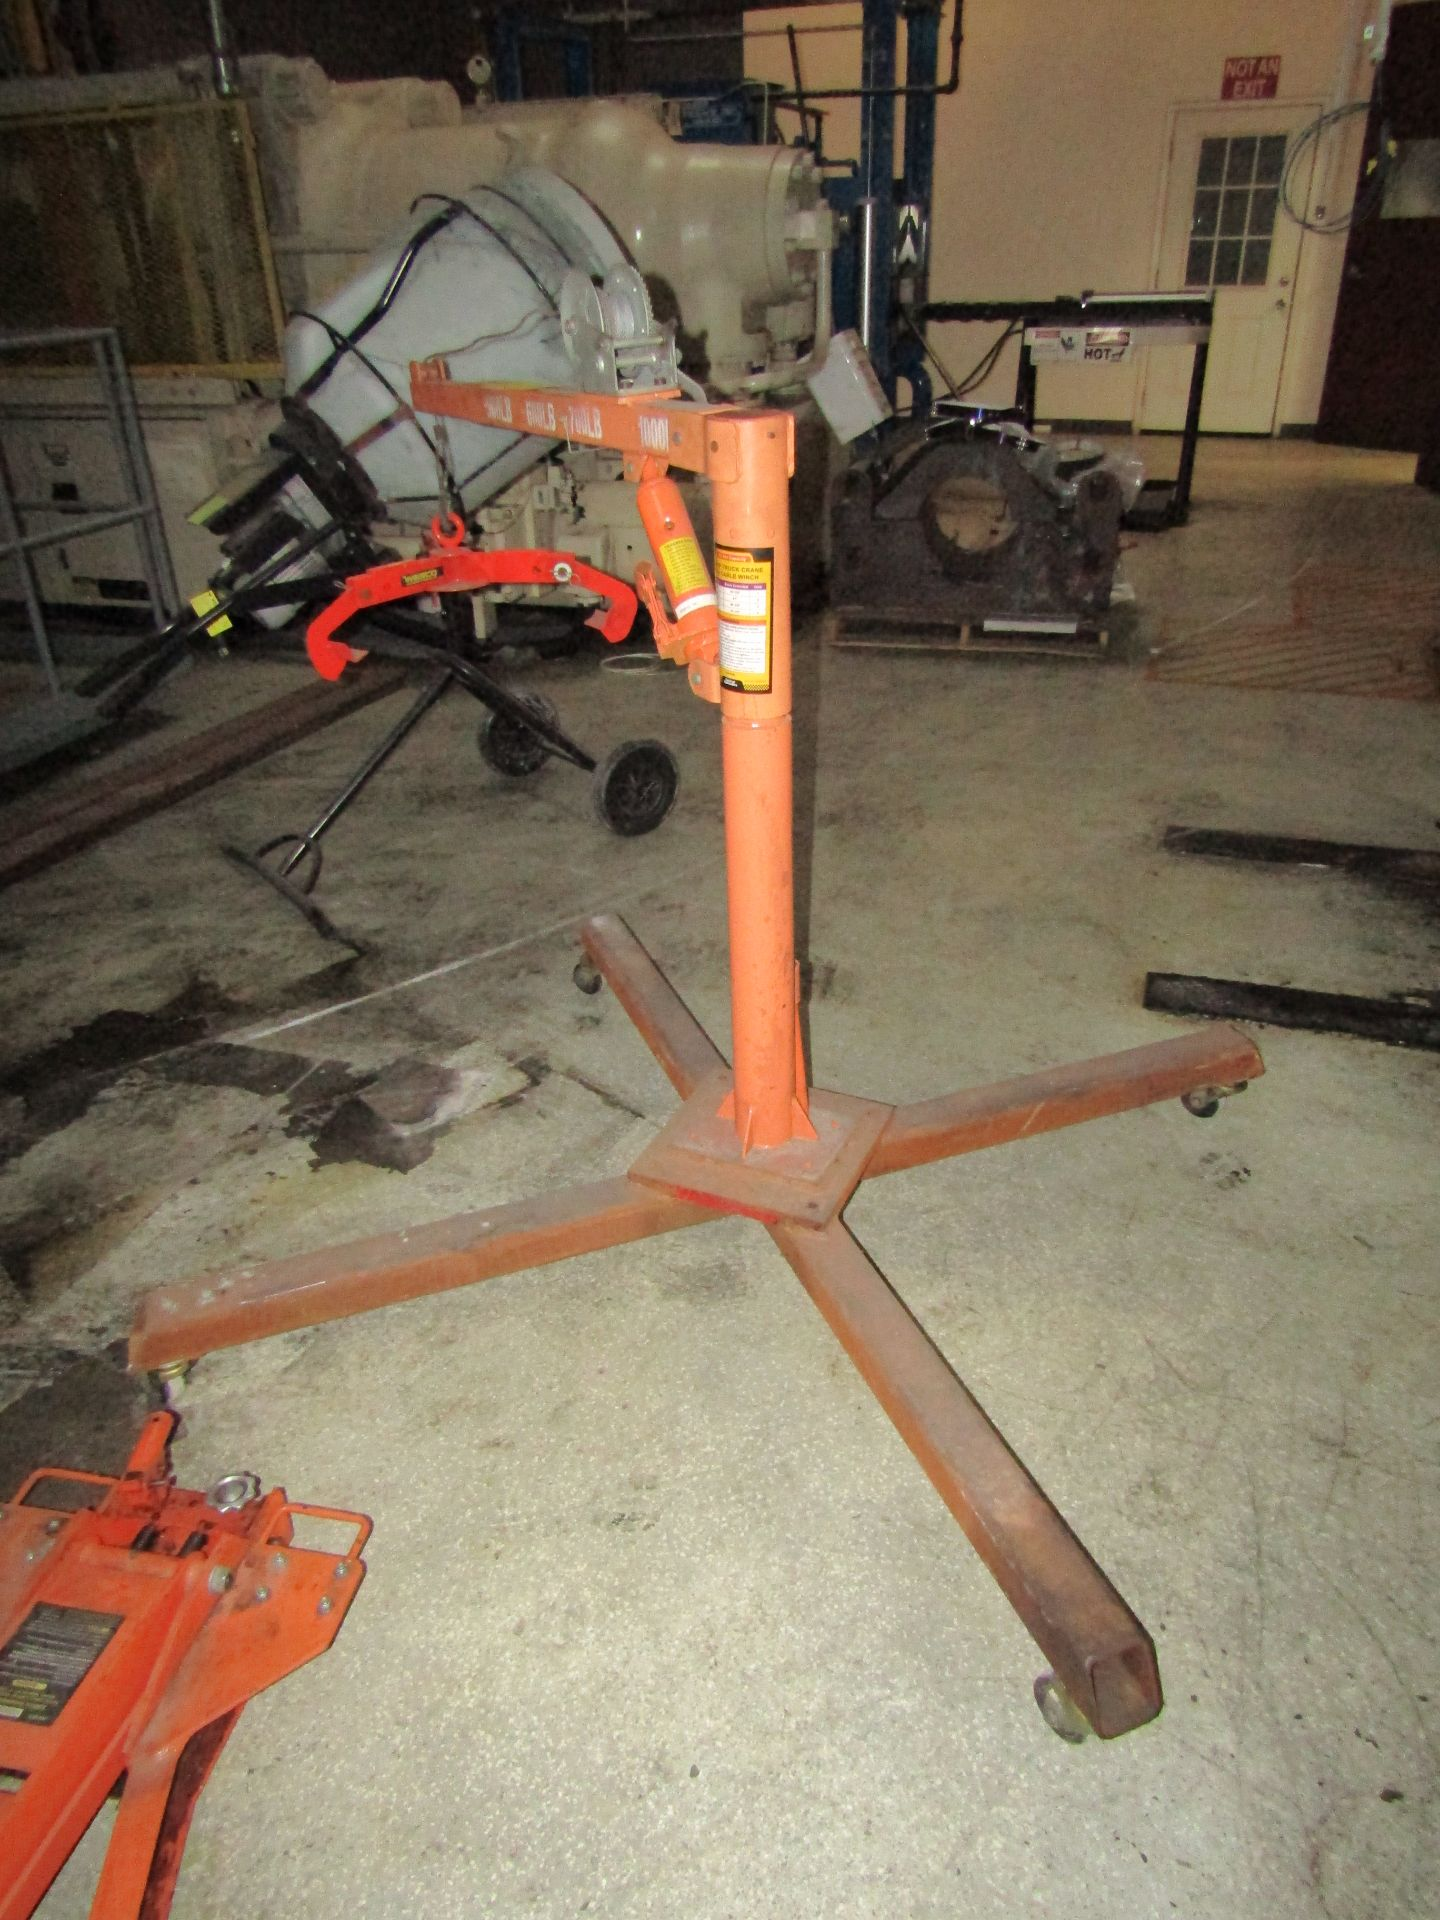 Lot 89 - 1/2 Ton Pickup Truck Crane With Cable Winch, 500 - 1,000 LB Cap, With Wesco Unit Grab Hook